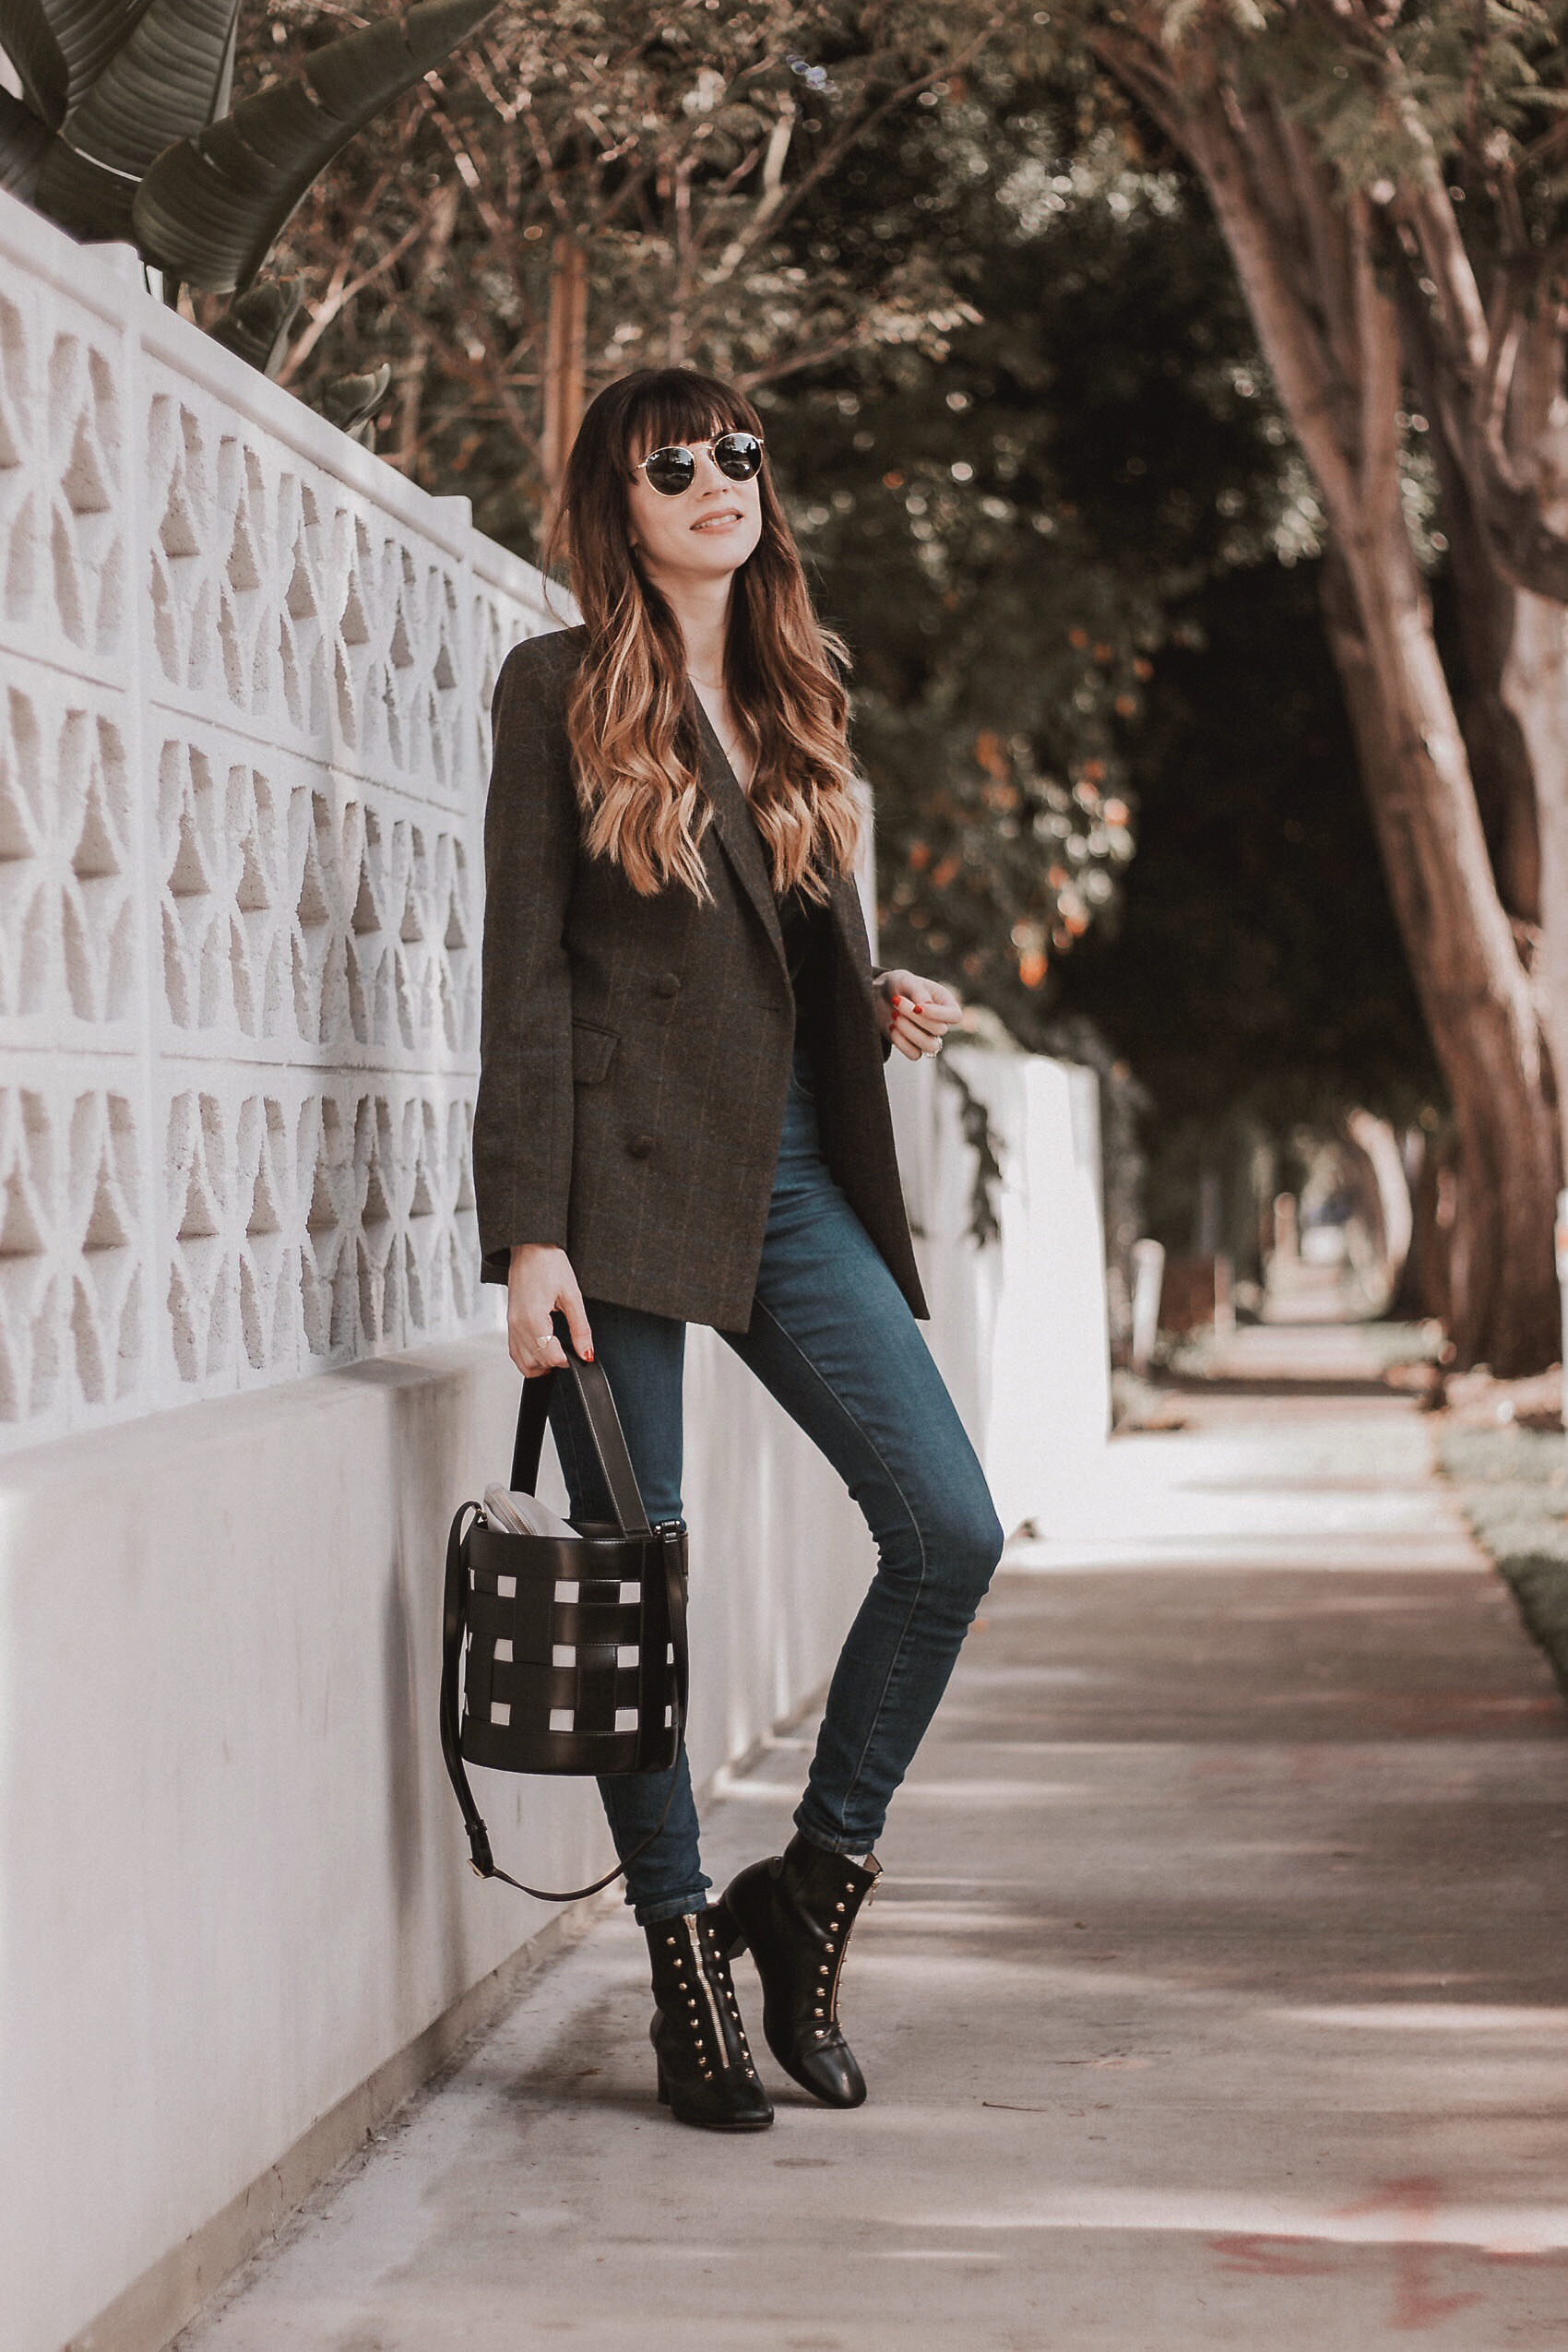 Jeans and a Teacup, Los Angeles Fashion Blogger, Ethical Fashion Blogger, How to Style a Wool Blazer